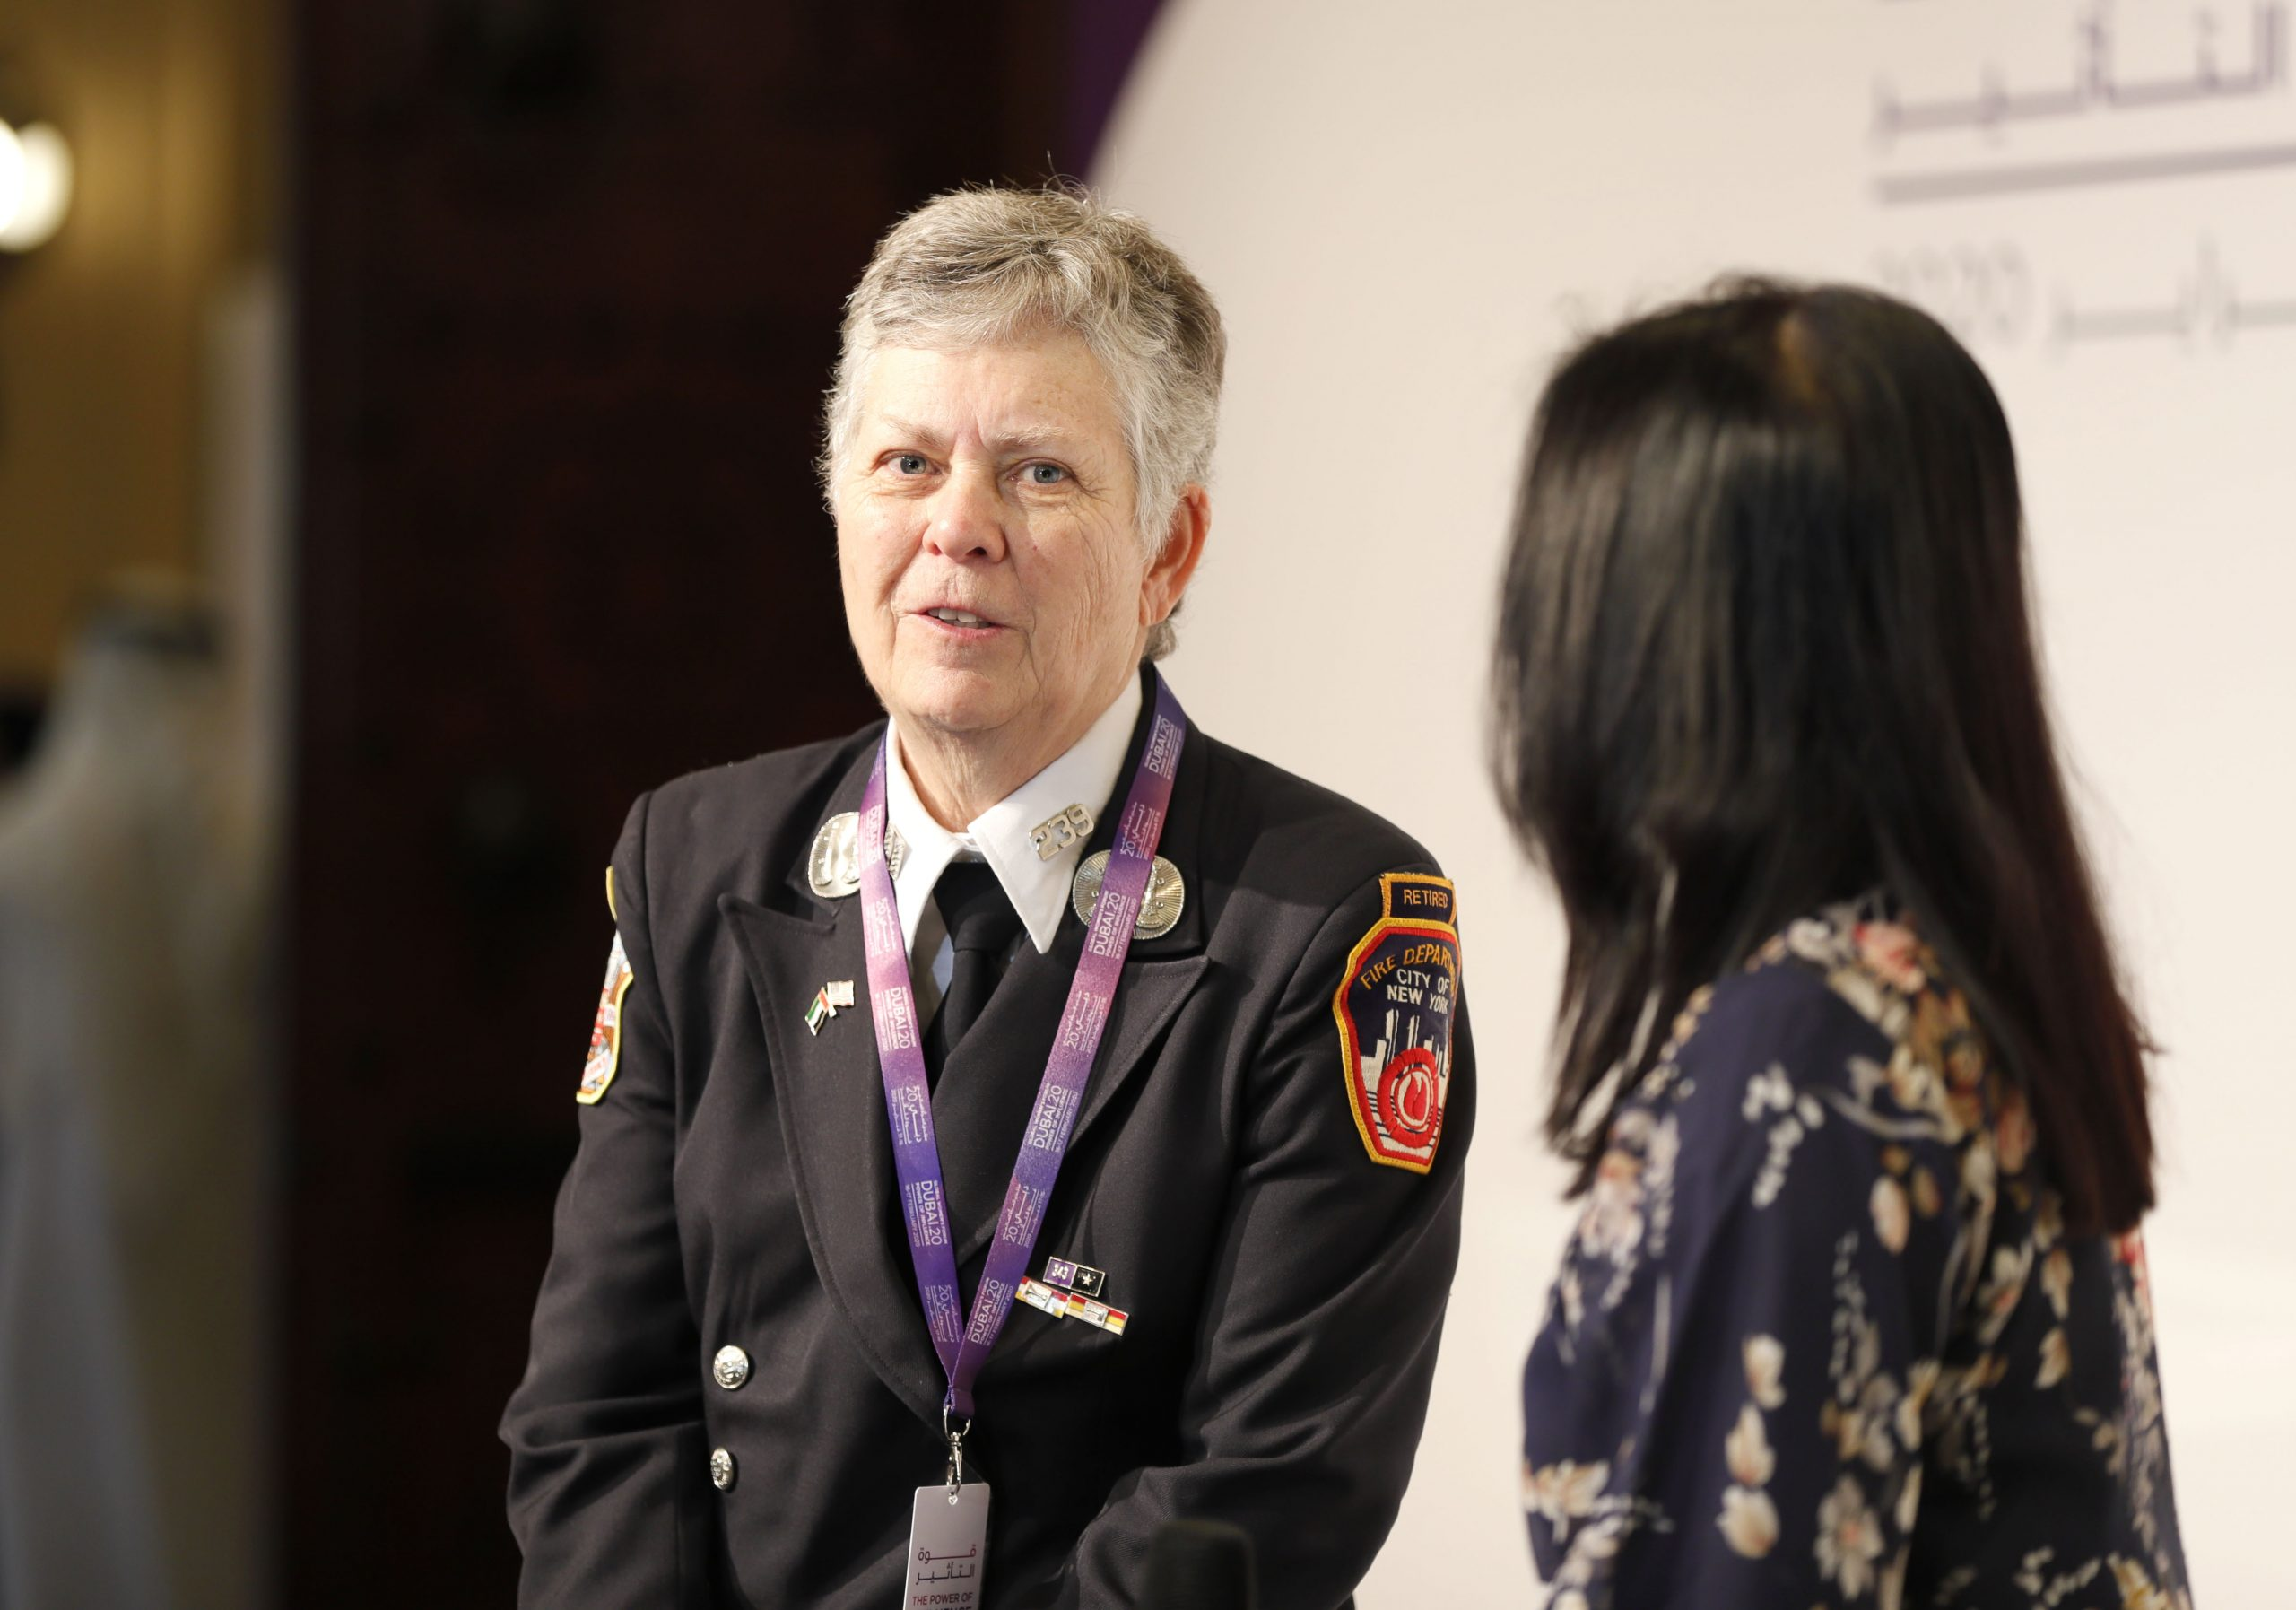 Trailblazing firefighter Brenda Berkman shares her game-changing journey at Global Women's Forum Dubai 2020